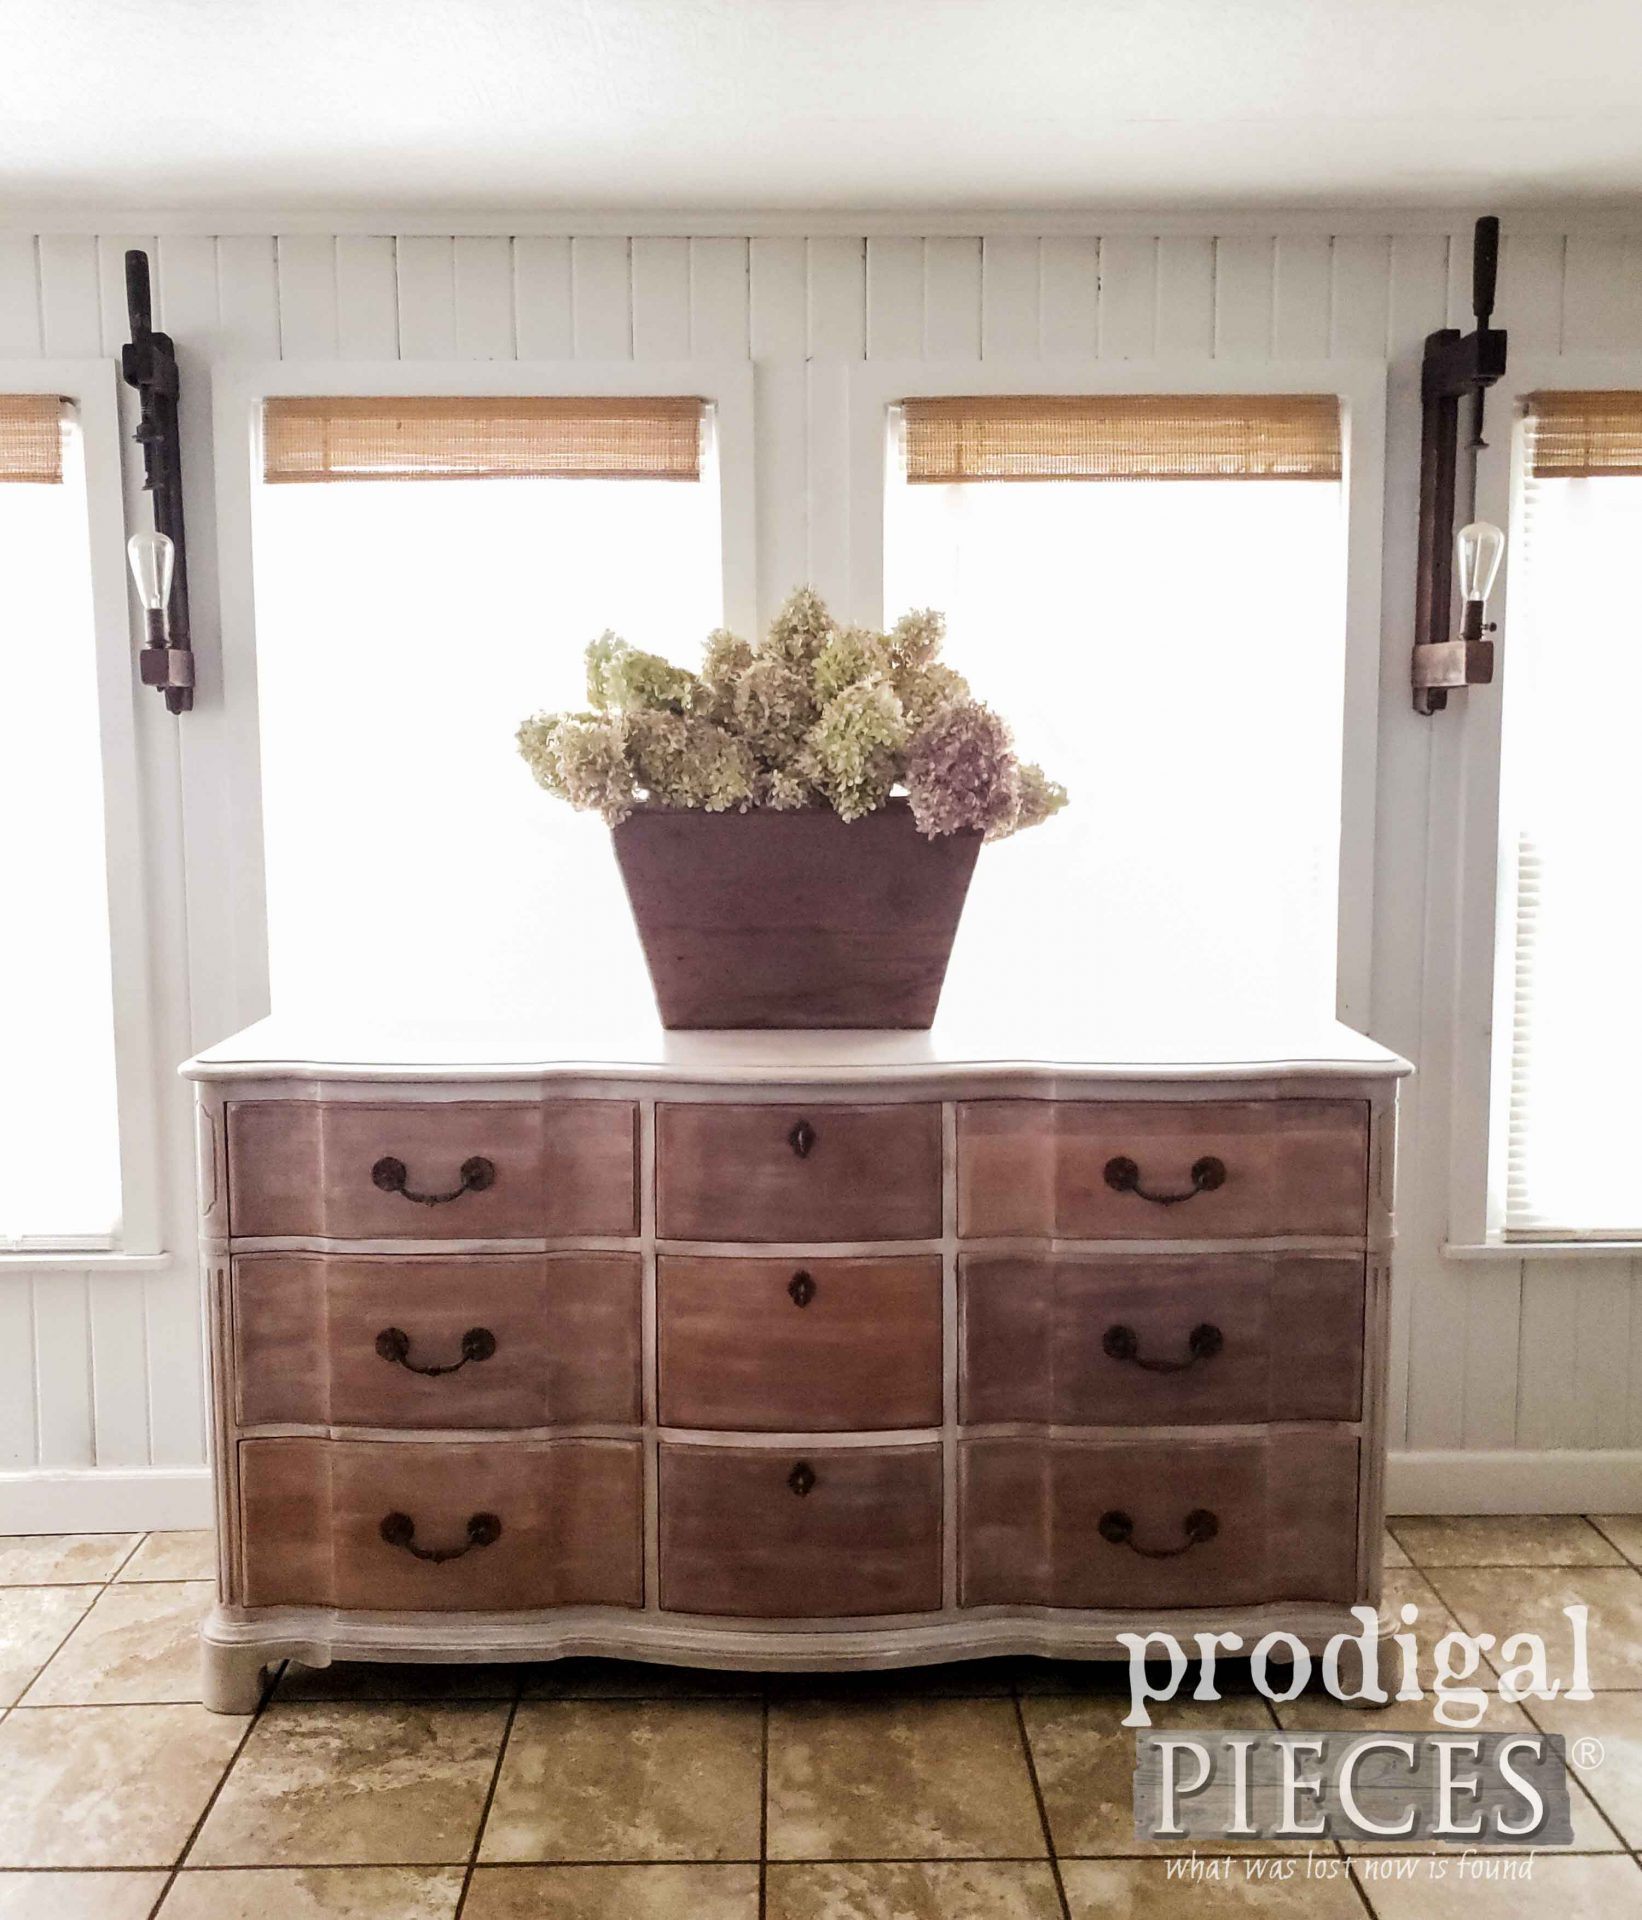 Gorgeous Vintage Serpentine Dresser with Paint Layering Technique by Larissa of Prodigal Pieces | prodigalpieces.com #prodigalpieces #diy #home #homedecor #furniture #farmhouse